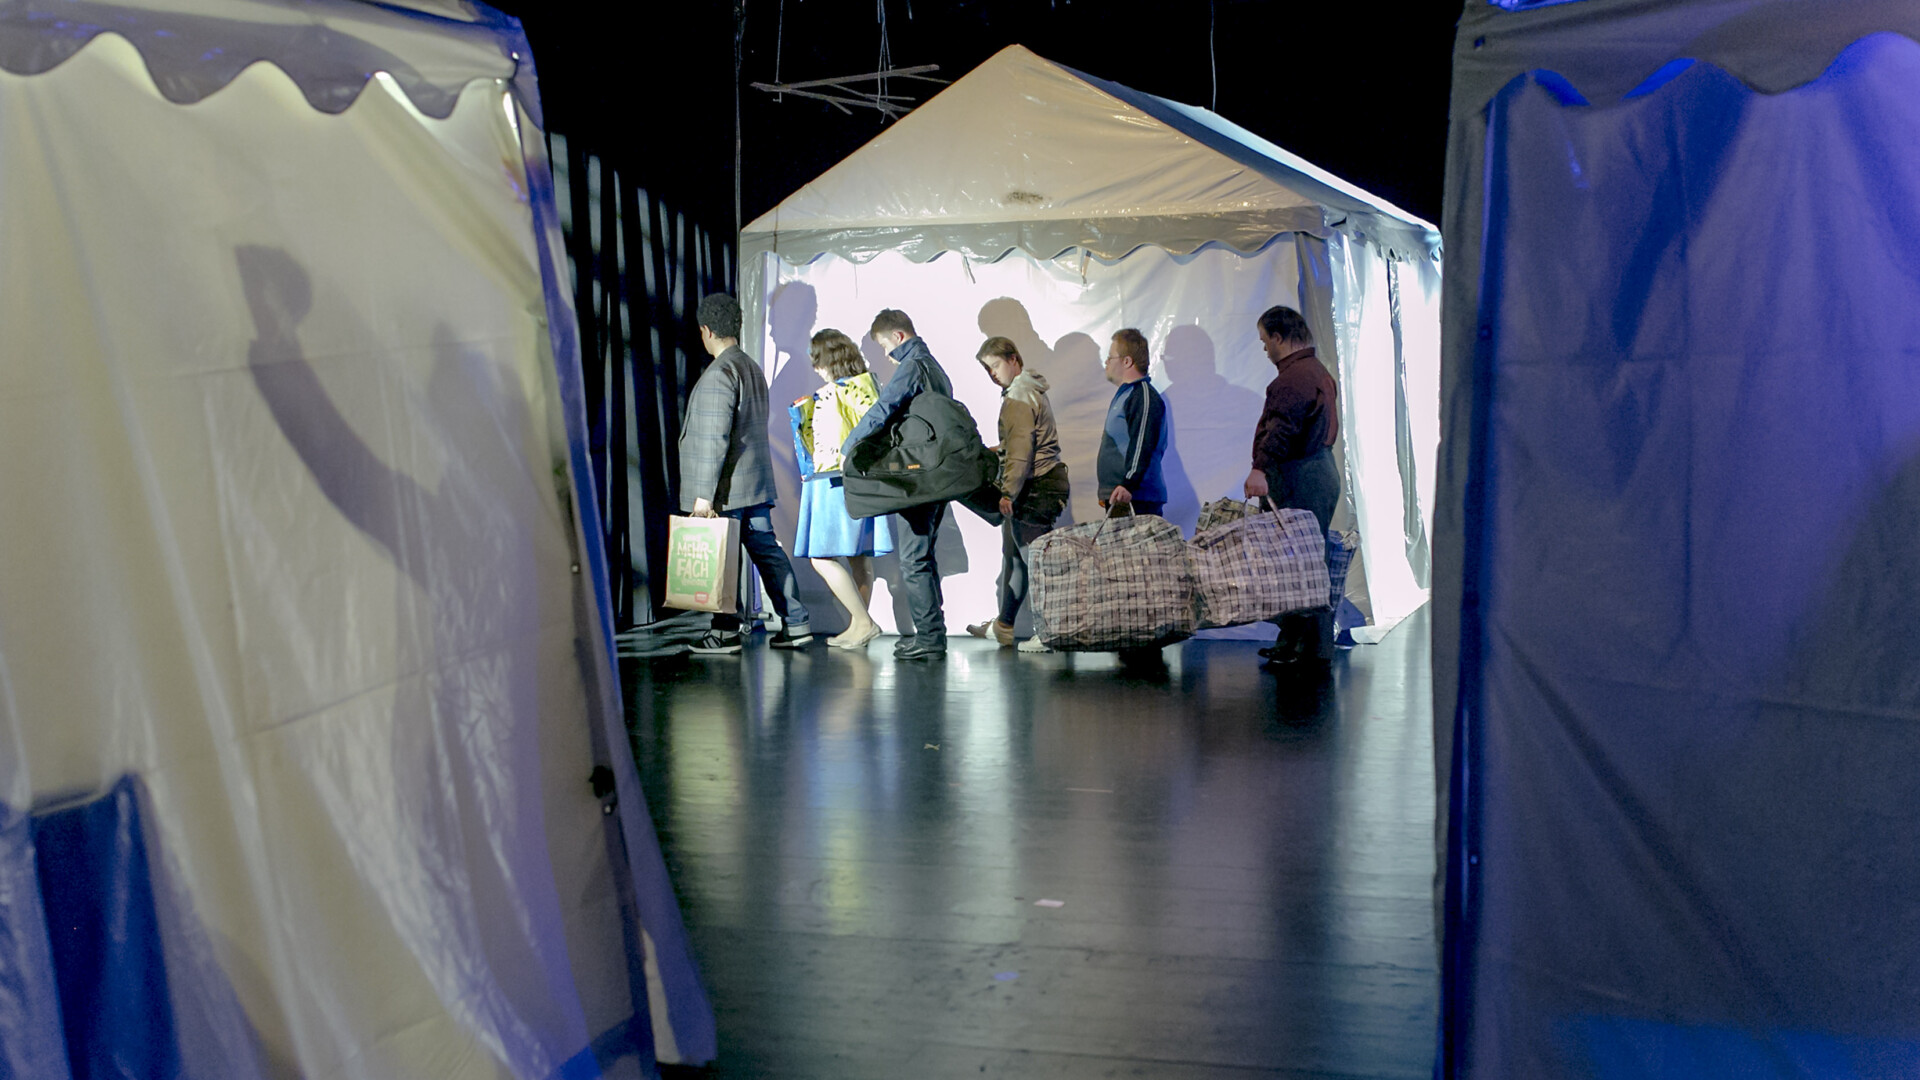 Scene photo of a performance: Three white party tents, 6 people mit bags in the background.